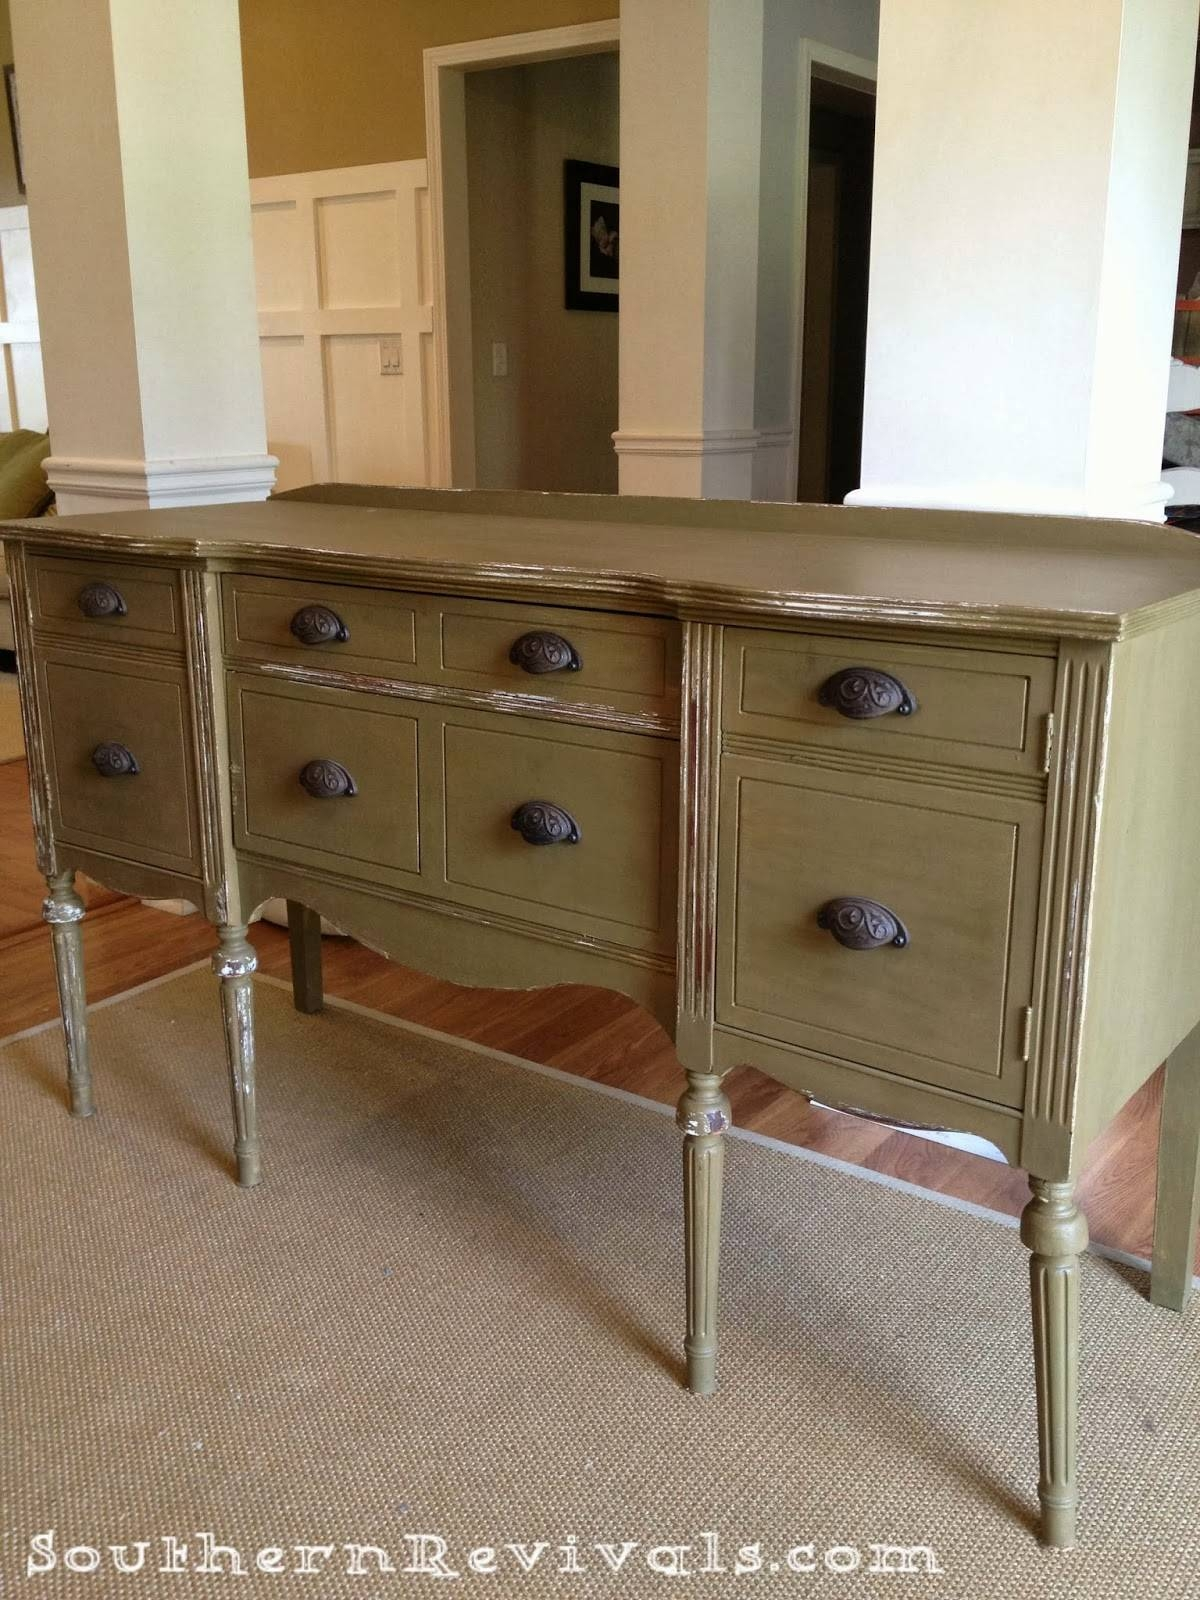 Updating A Vintage Sideboard Buffet With A Pop Of Color – Southern For Vintage Sideboards And Buffets (View 5 of 15)